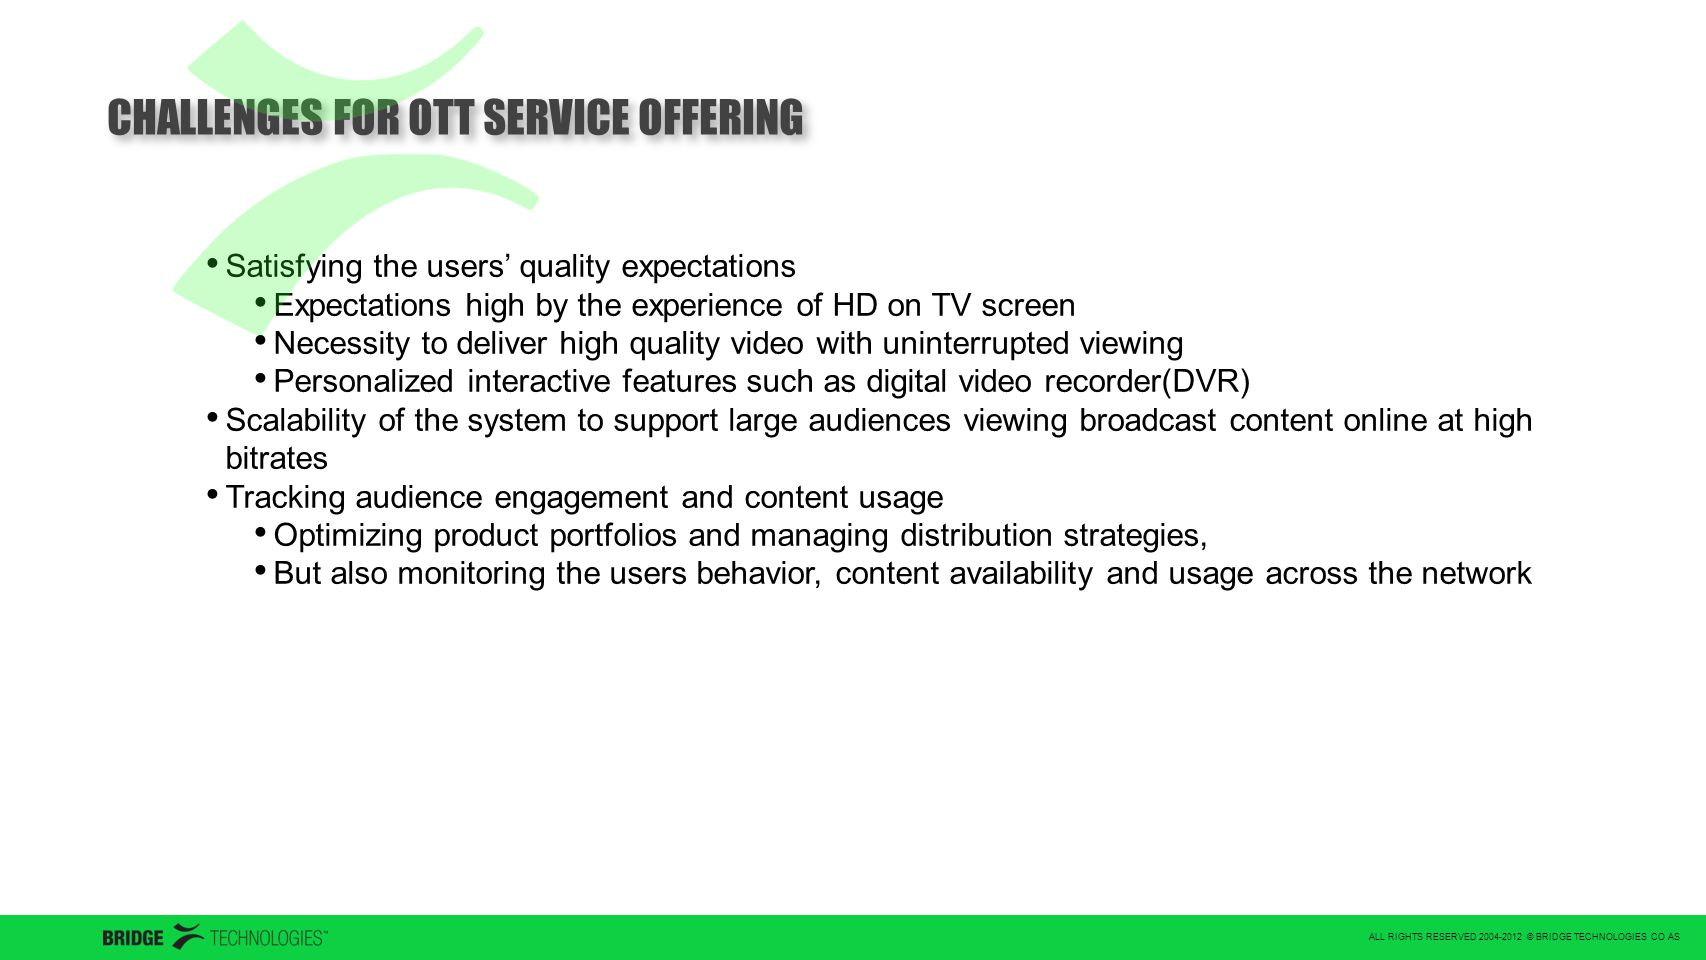 ALL RIGHTS RESERVED 2004-2012 © BRIDGE TECHNOLOGIES CO AS CHALLENGES FOR OTT SERVICE OFFERING Satisfying the users' quality expectations Expectations high by the experience of HD on TV screen Necessity to deliver high quality video with uninterrupted viewing Personalized interactive features such as digital video recorder(DVR) Scalability of the system to support large audiences viewing broadcast content online at high bitrates Tracking audience engagement and content usage Optimizing product portfolios and managing distribution strategies, But also monitoring the users behavior, content availability and usage across the network